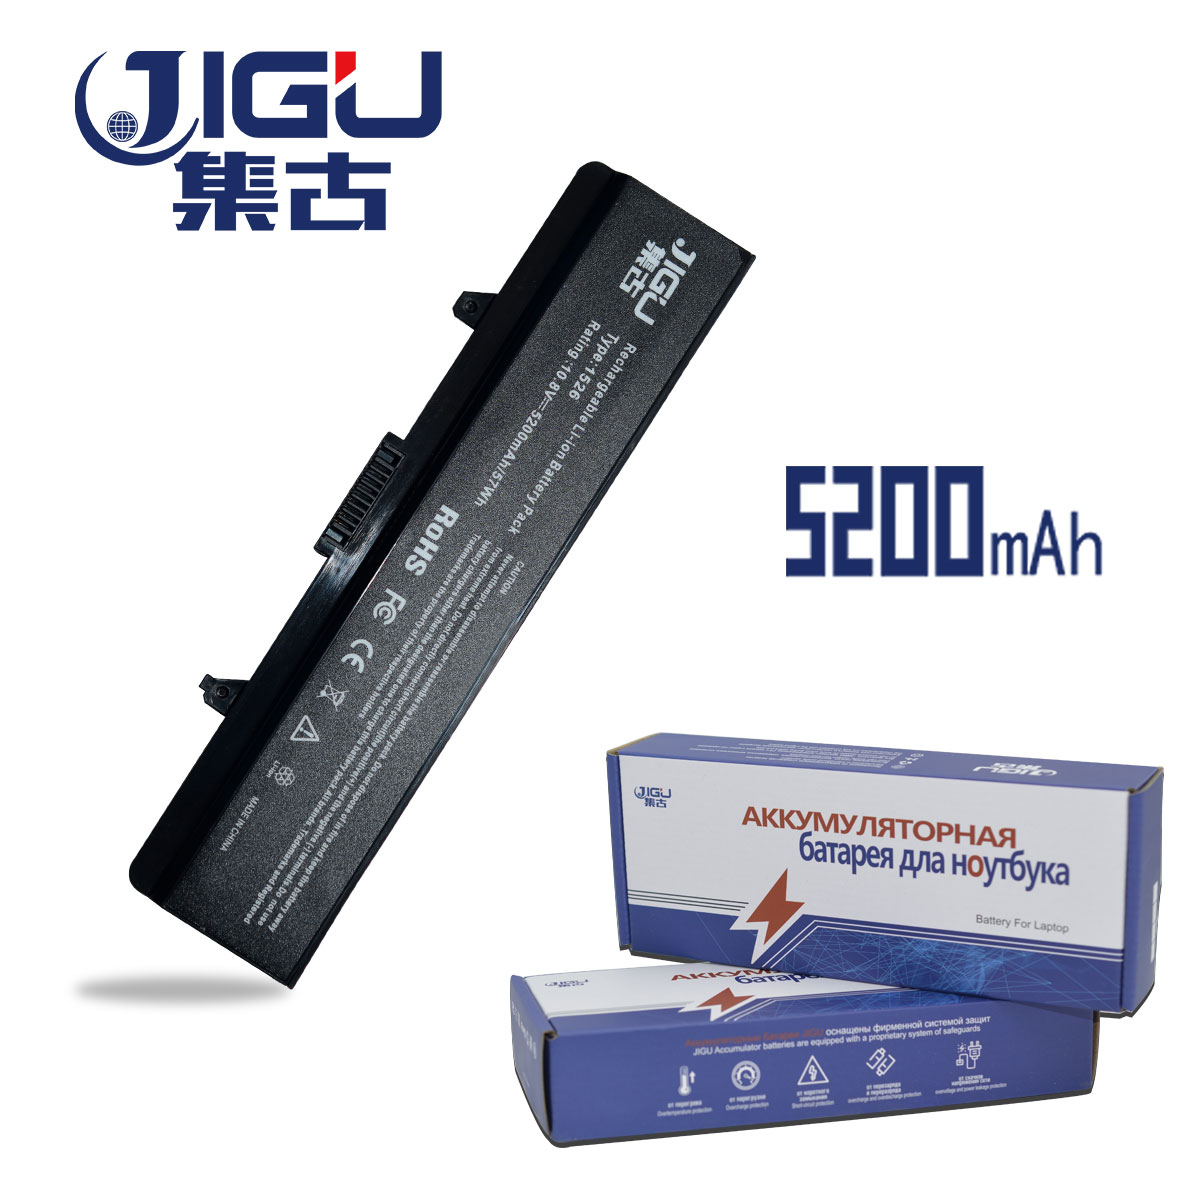 JIGU Laptop Akku FÜR Dell GW240 297 M911G RN873 RU586 XR693 Für Dell Inspiron 1525 1526 1545 Notebook Batterie X284g